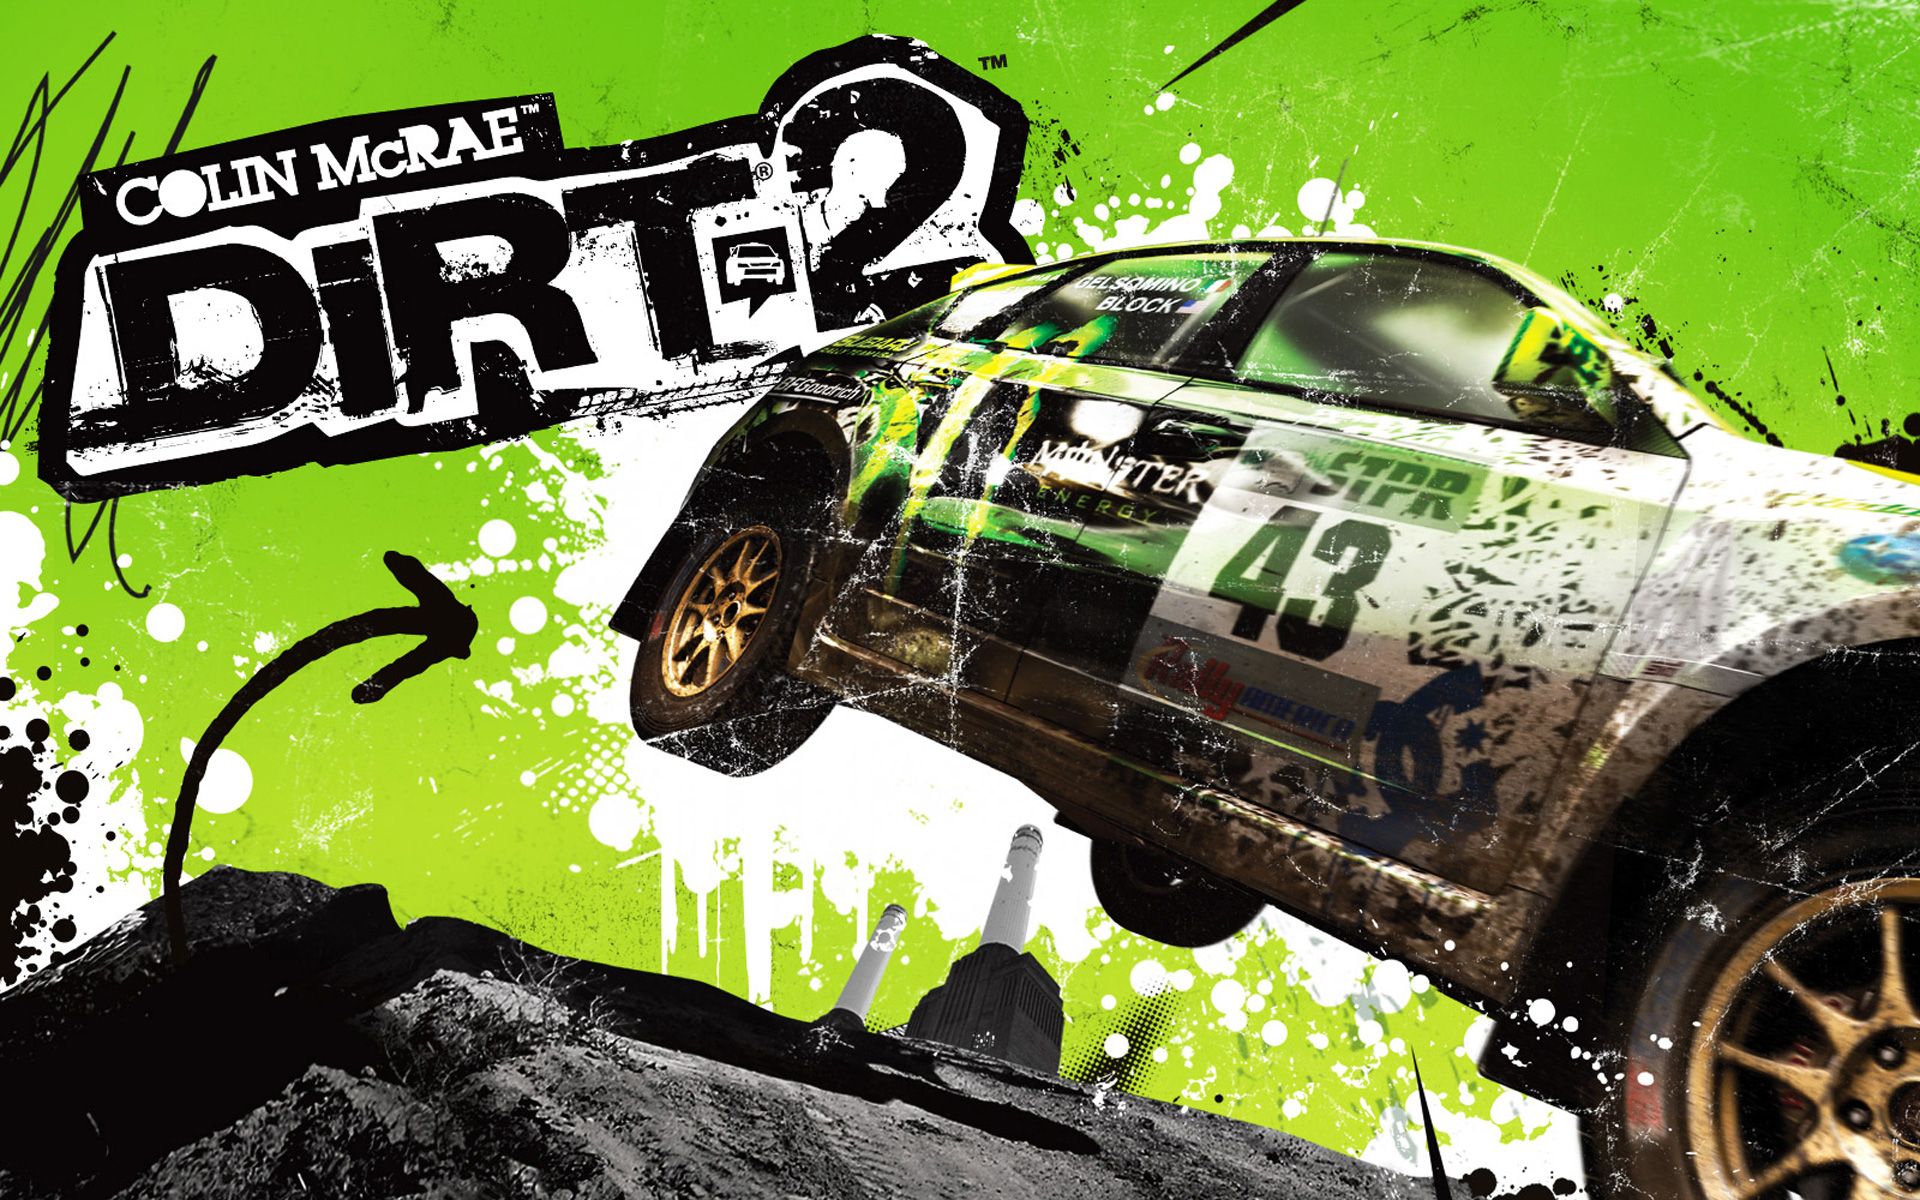 Colin McRae: Dirt 2 Wallpaper in 1920x1200